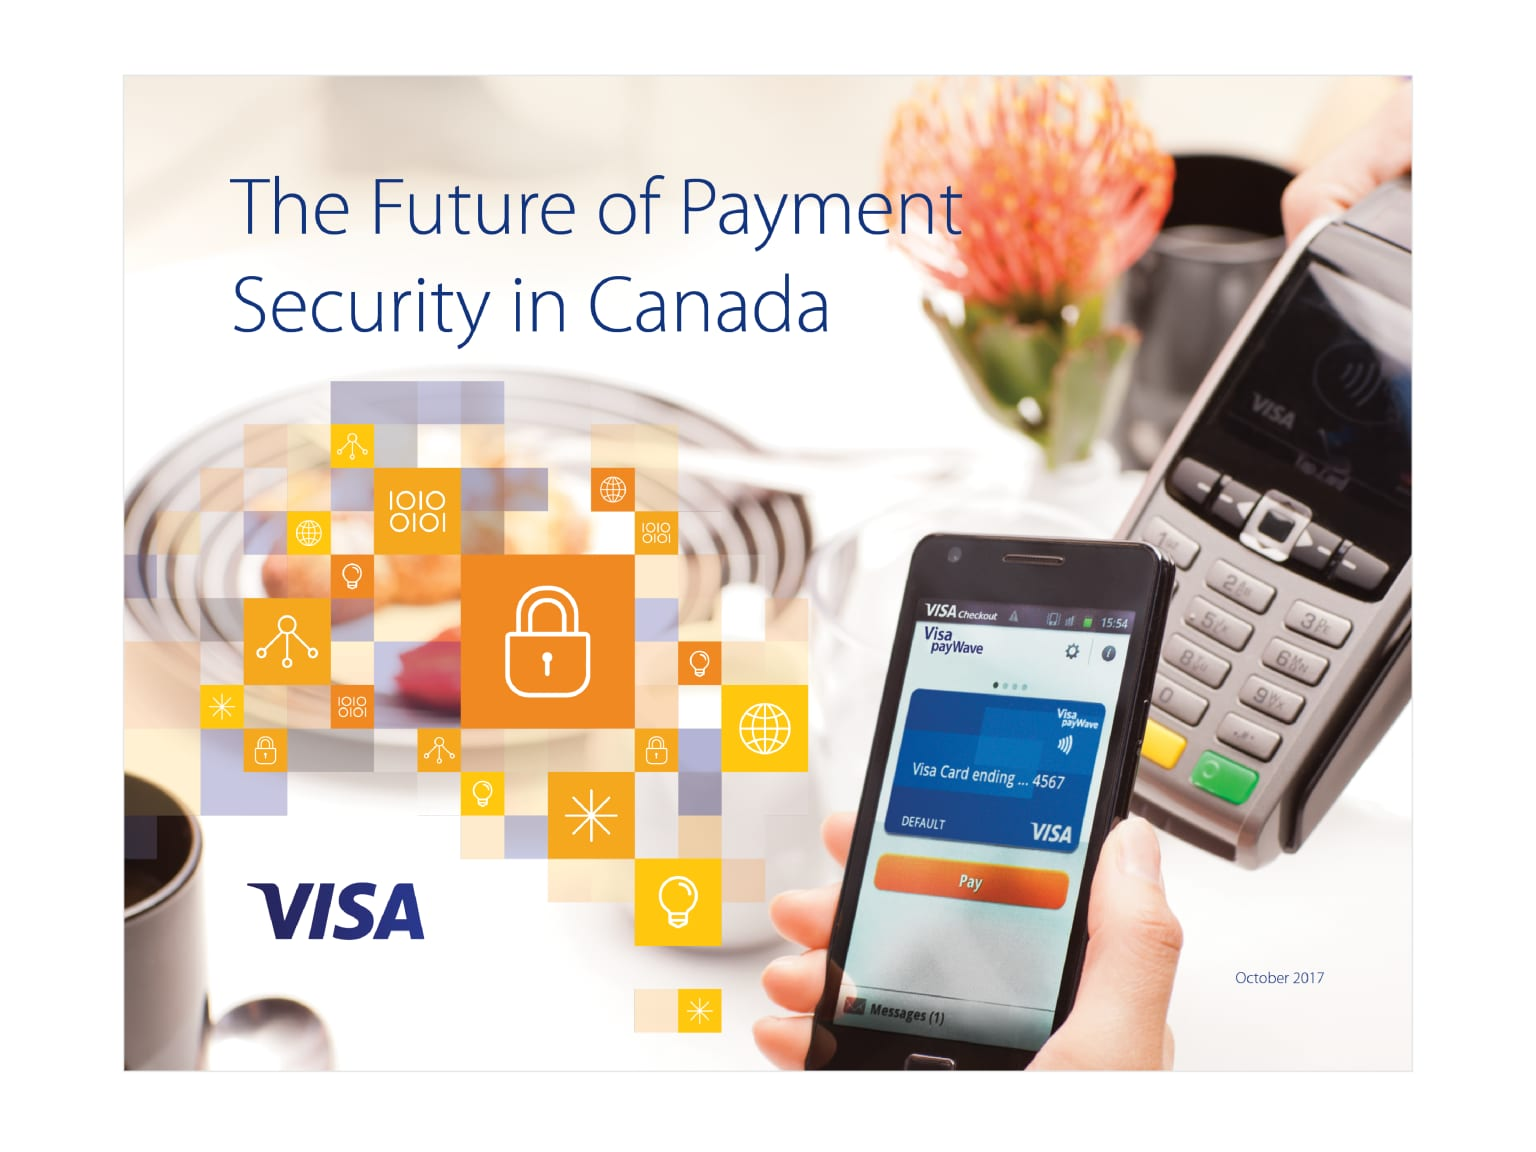 VISA • The Future of Payment Security in Canada